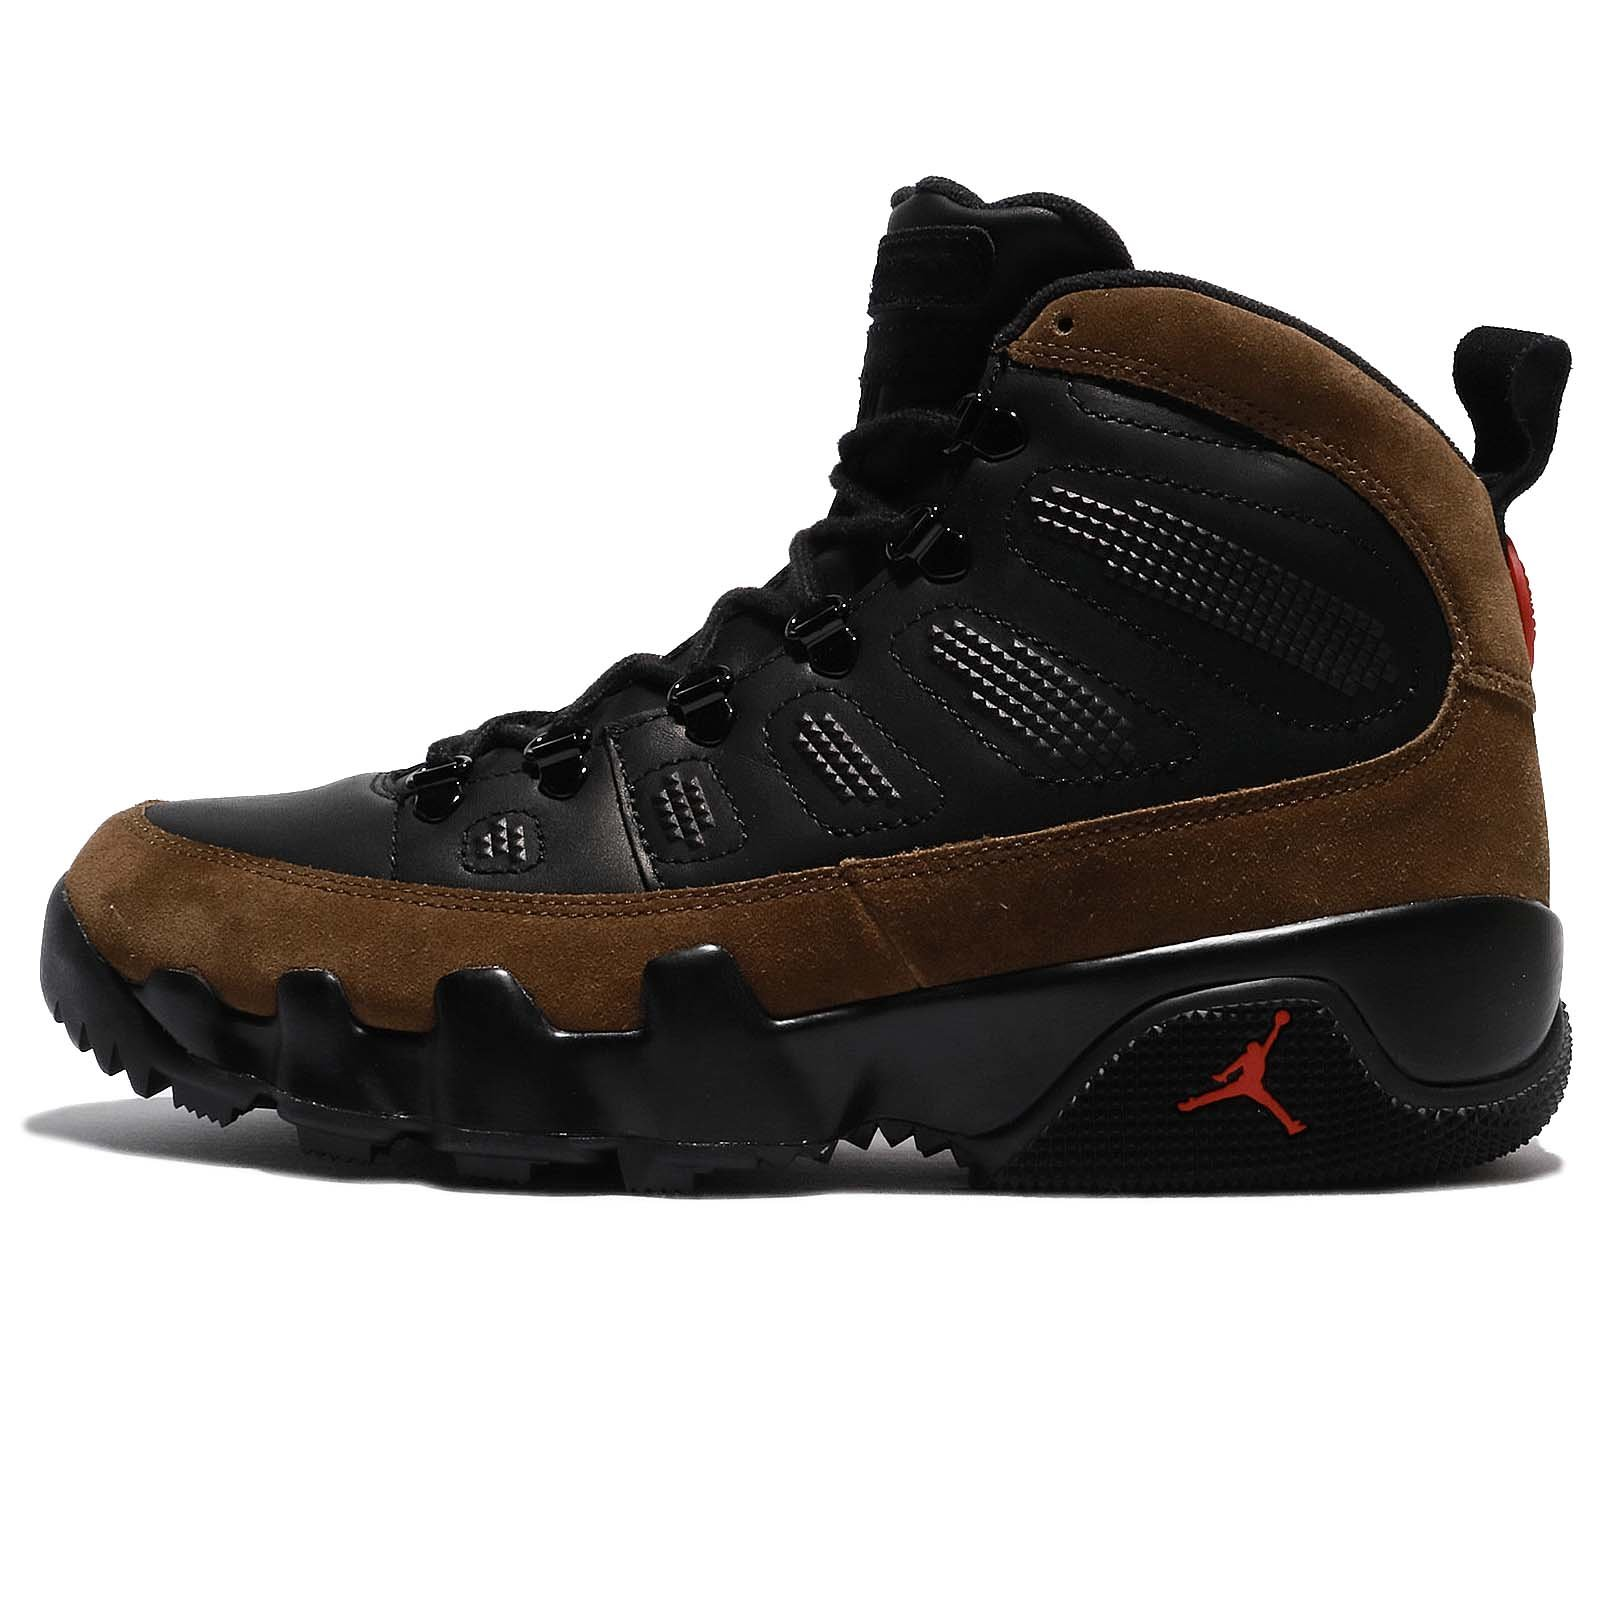 Jordan Air 9 Retro Boot NRG - US 11